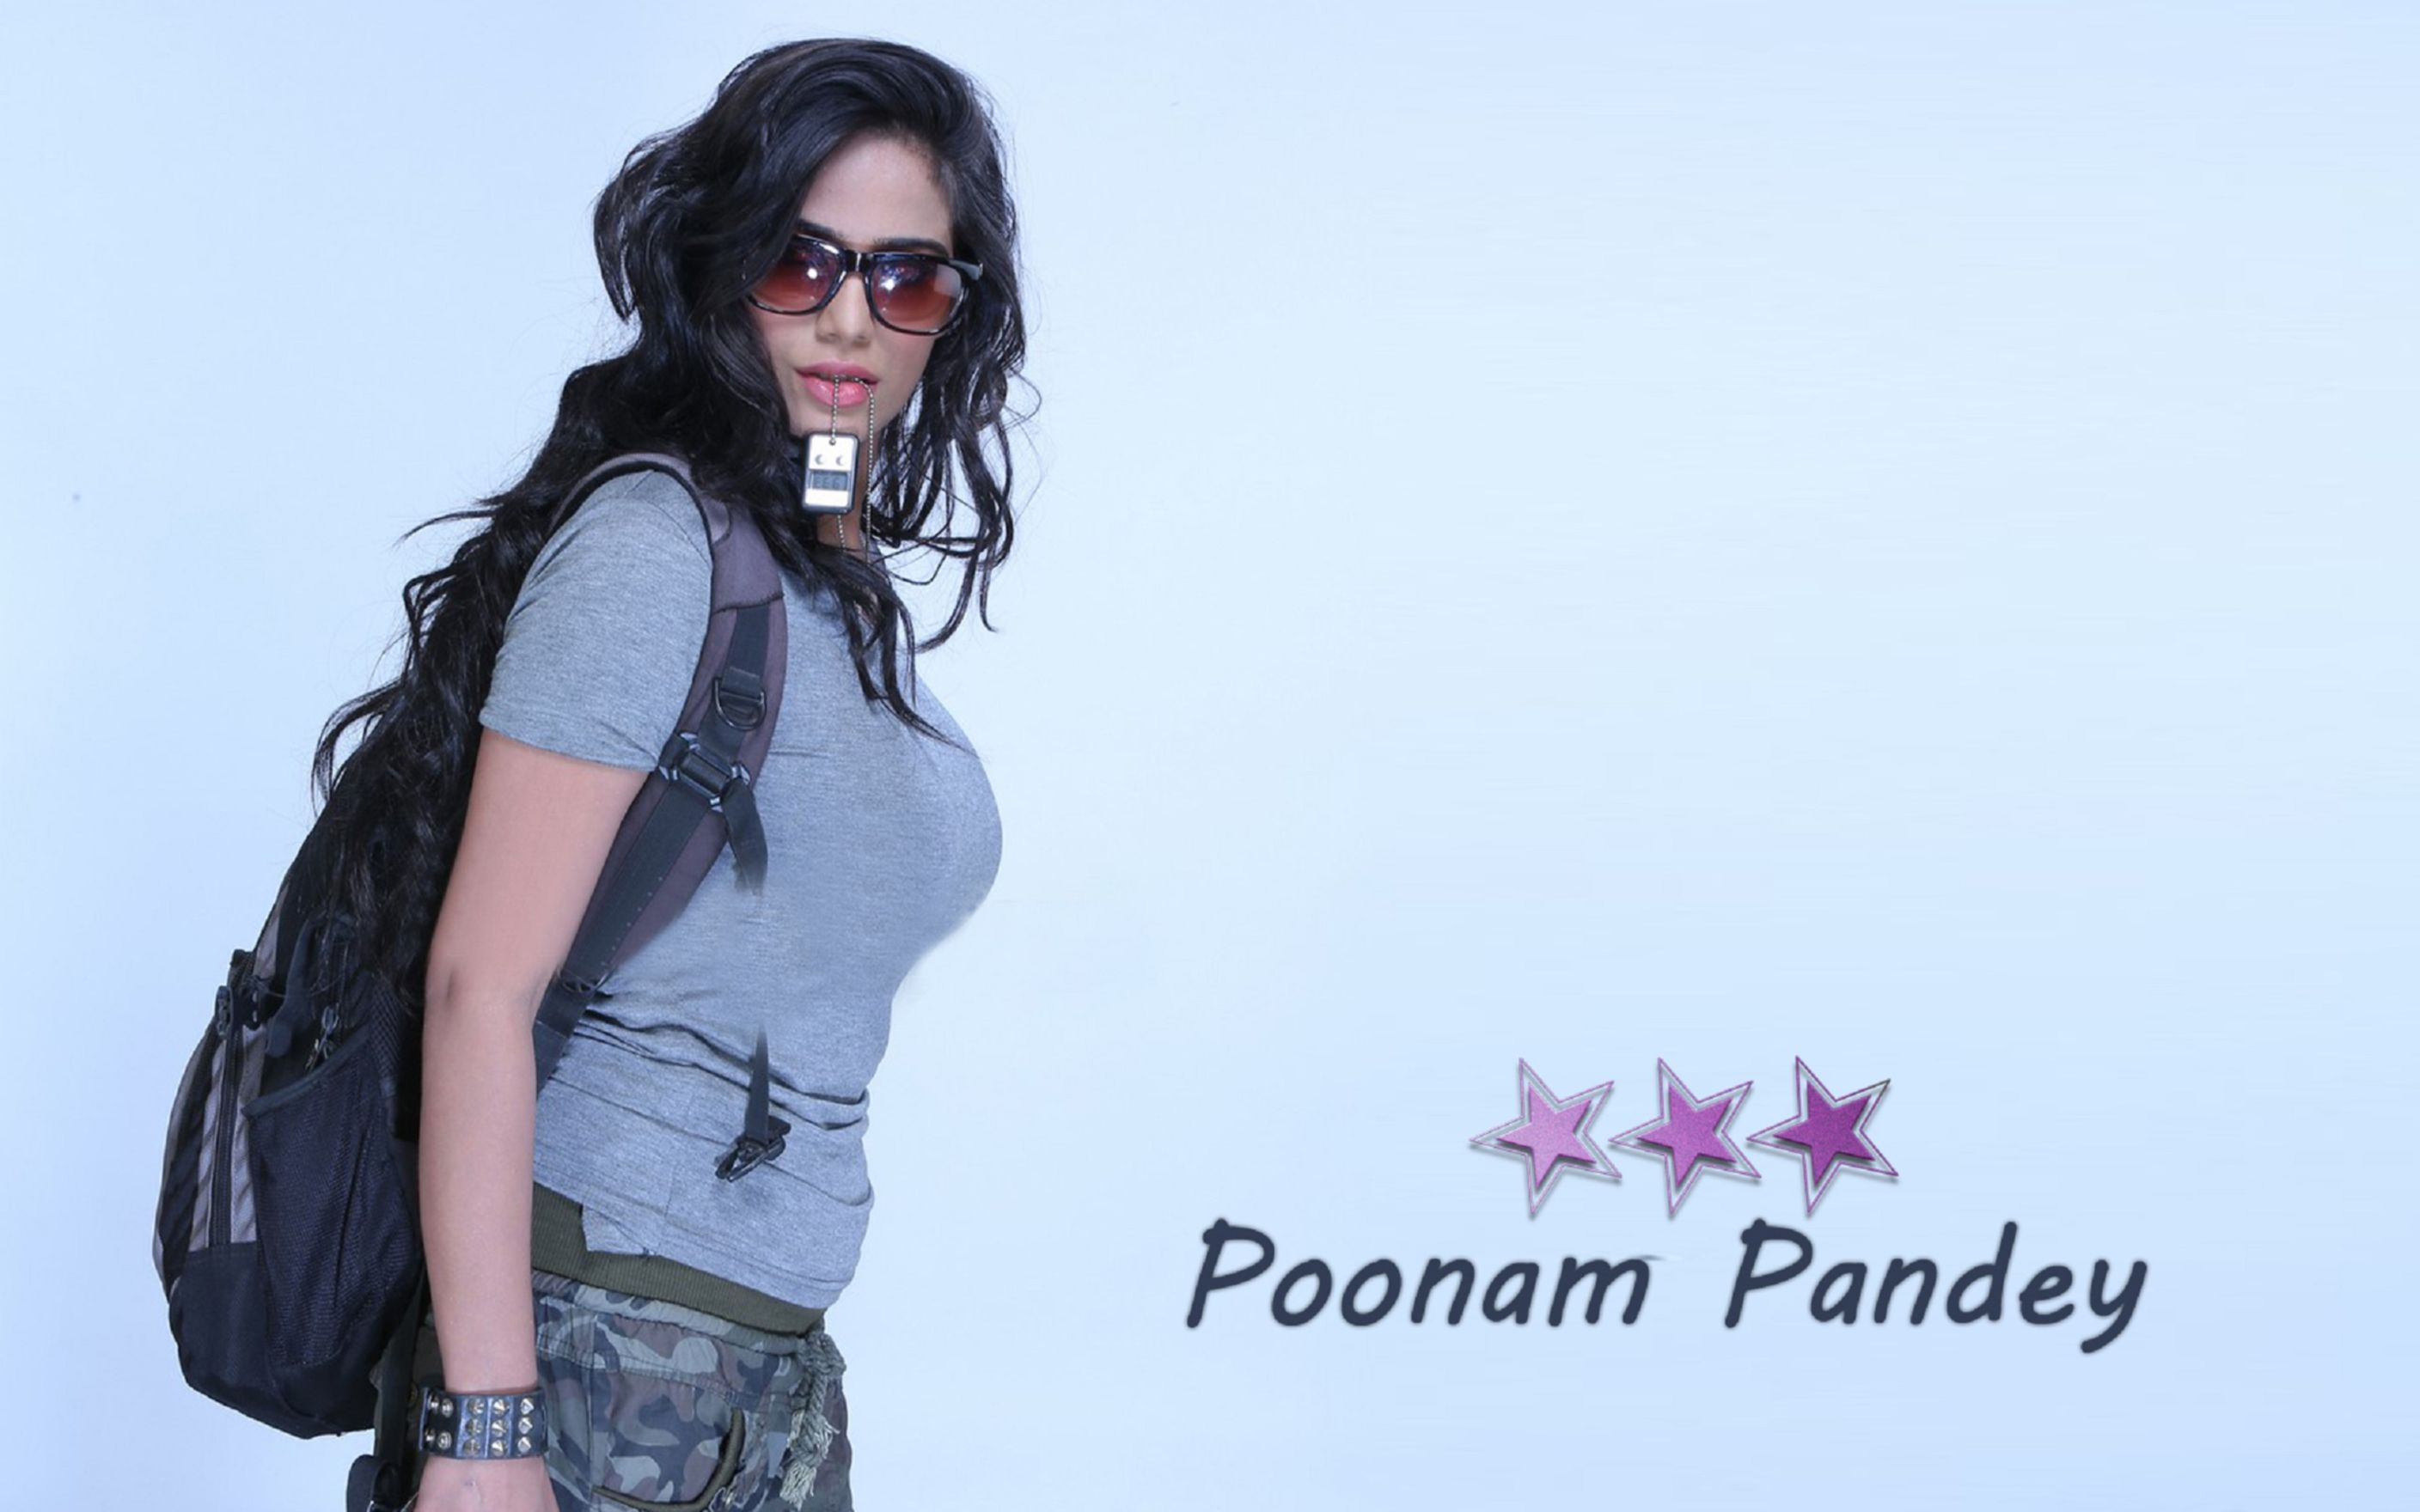 Download free HD Poonam Pandey Wallpaper, image